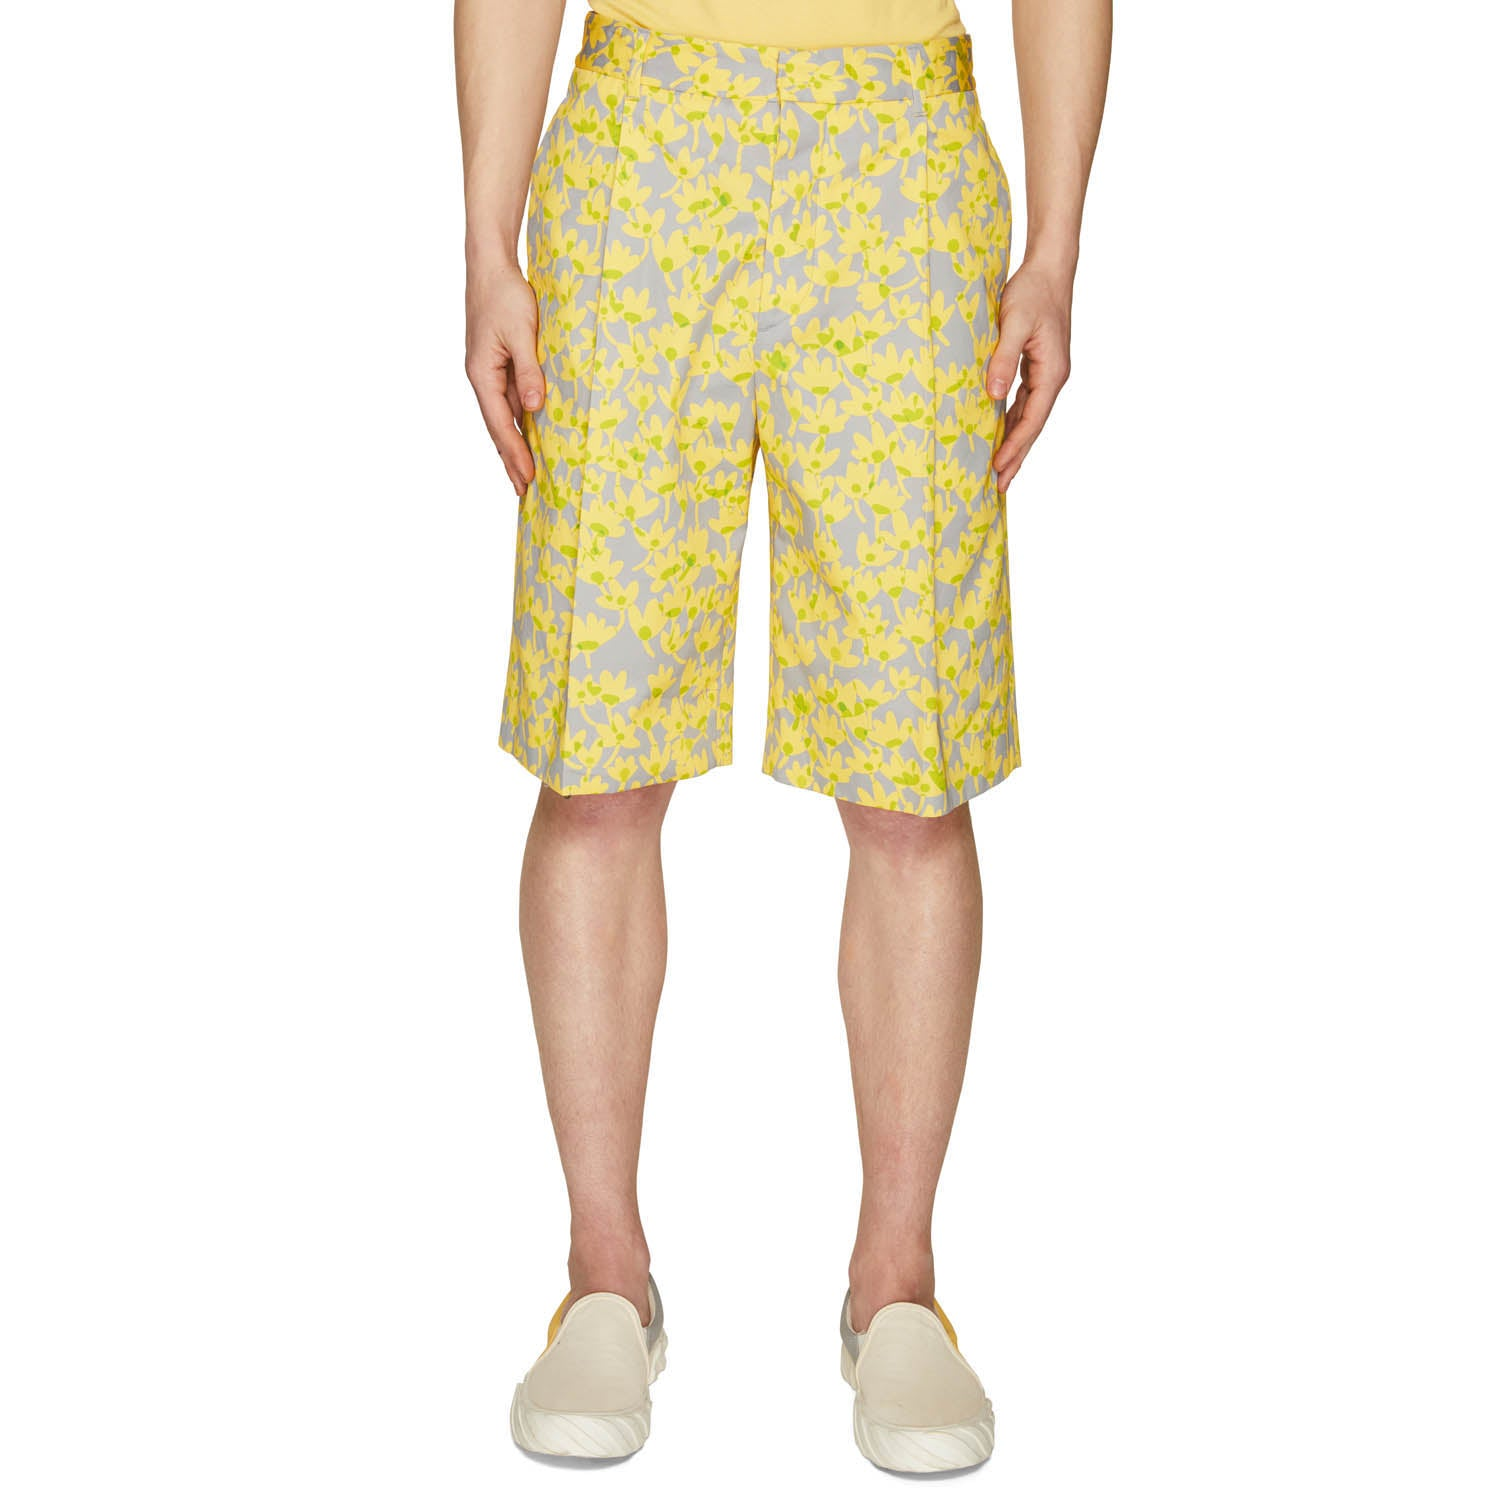 PRINTED SINGLE PLEAT SHORTS LEMON YELLOW/ICE GREY